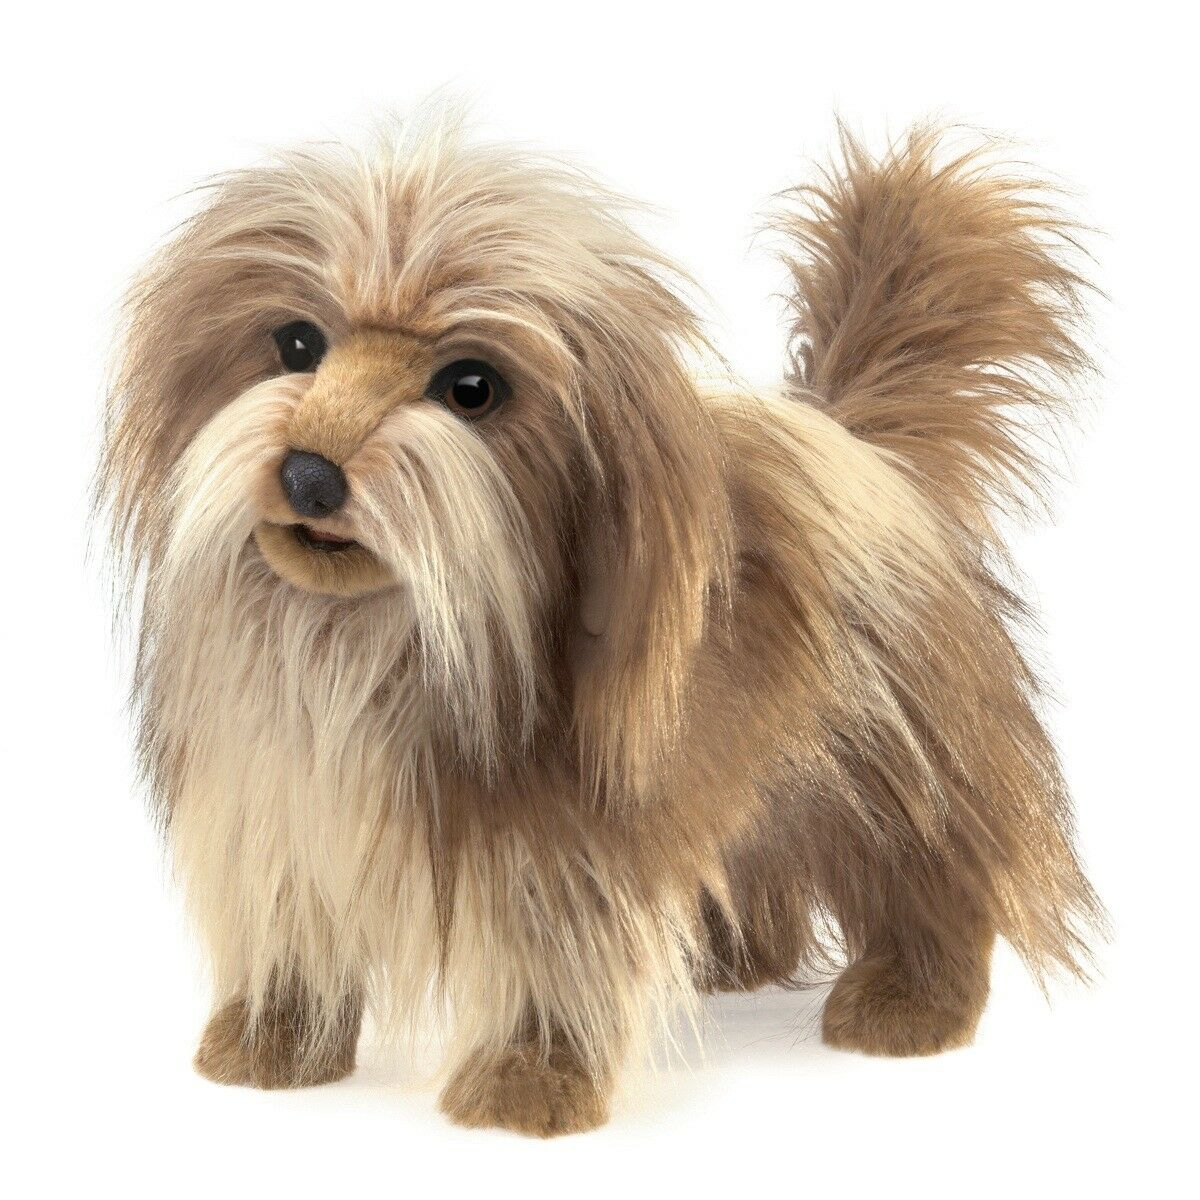 Shaggy Dog Hand Puppet by Folkmanis MPN 3104, Movable Mouth, 3 Years & Up